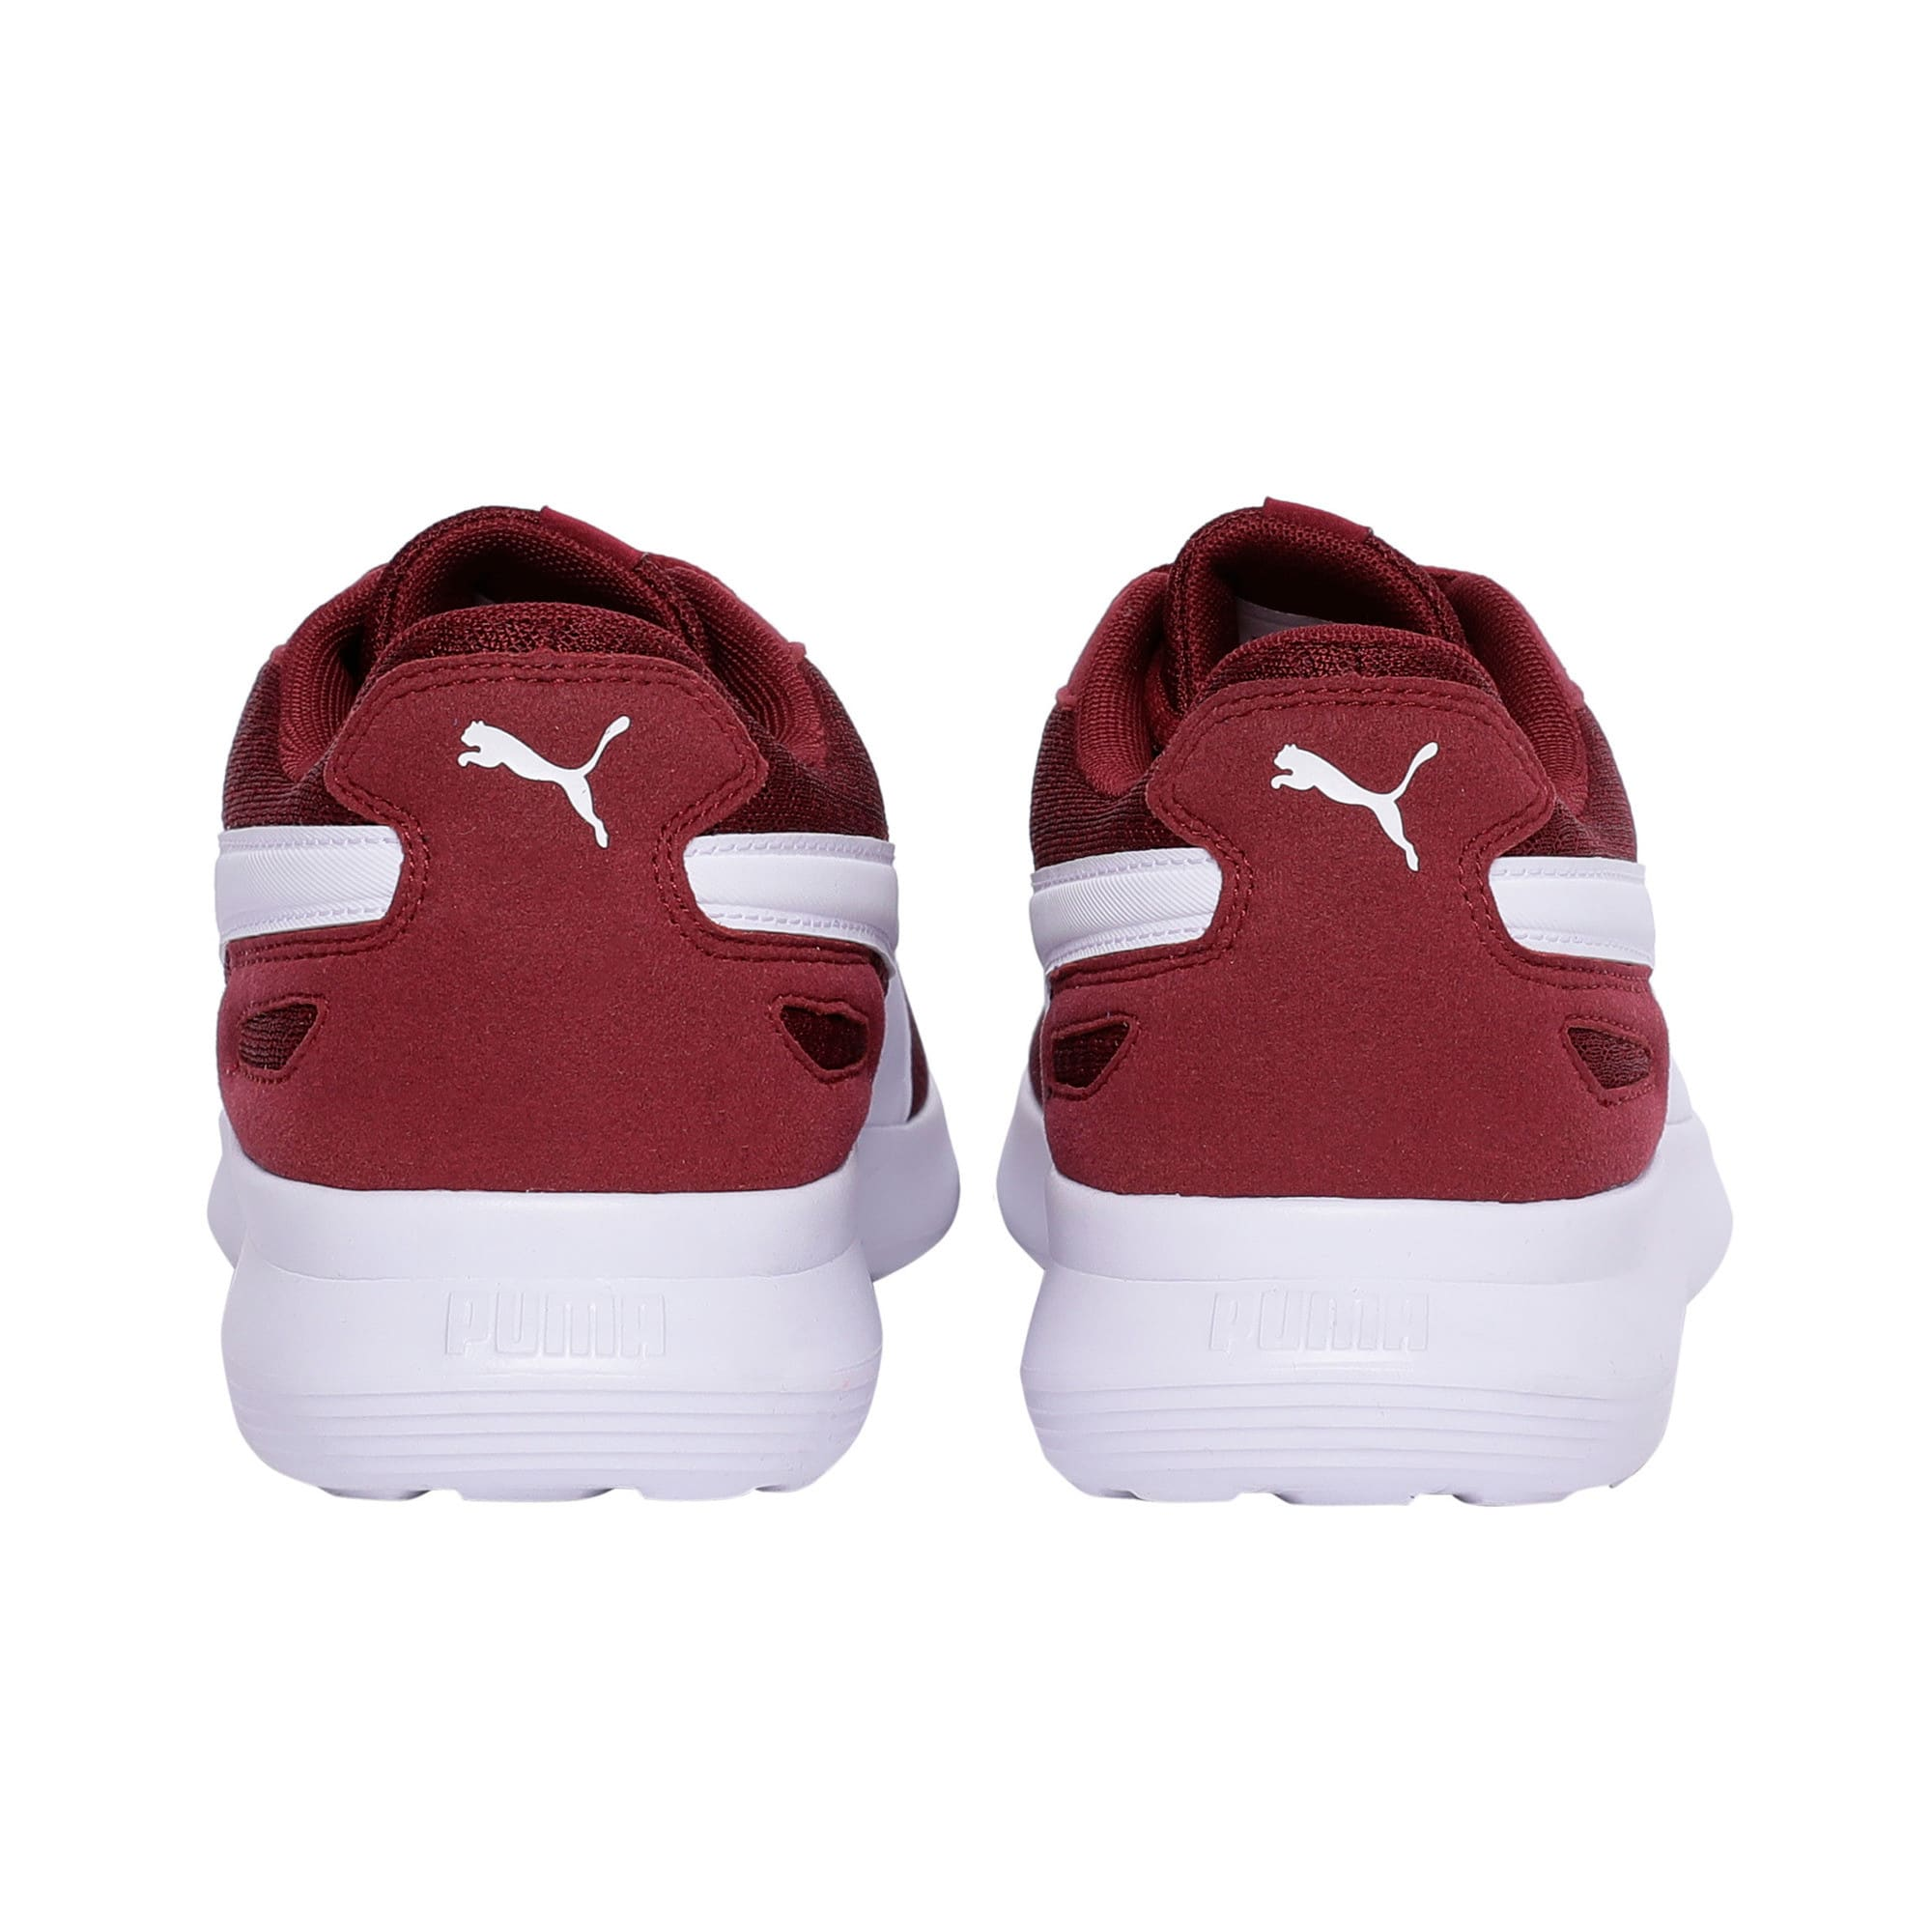 Thumbnail 3 of ST Activate Trainers, Cordovan-Puma White, medium-IND